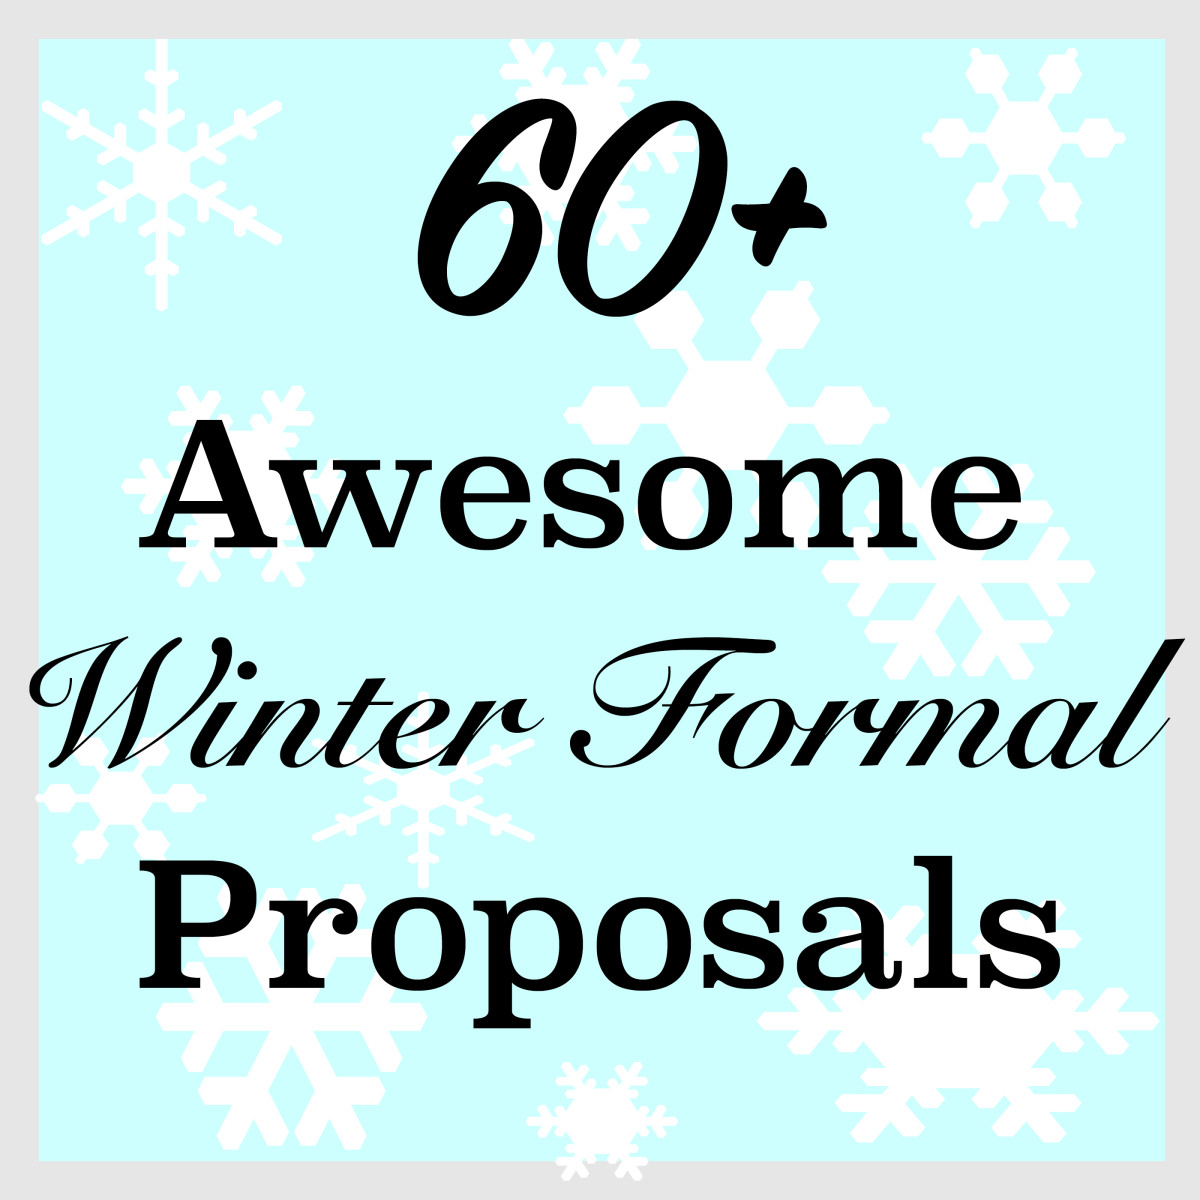 If you need an idea for a Winter Formal proposal, check out these great ideas!